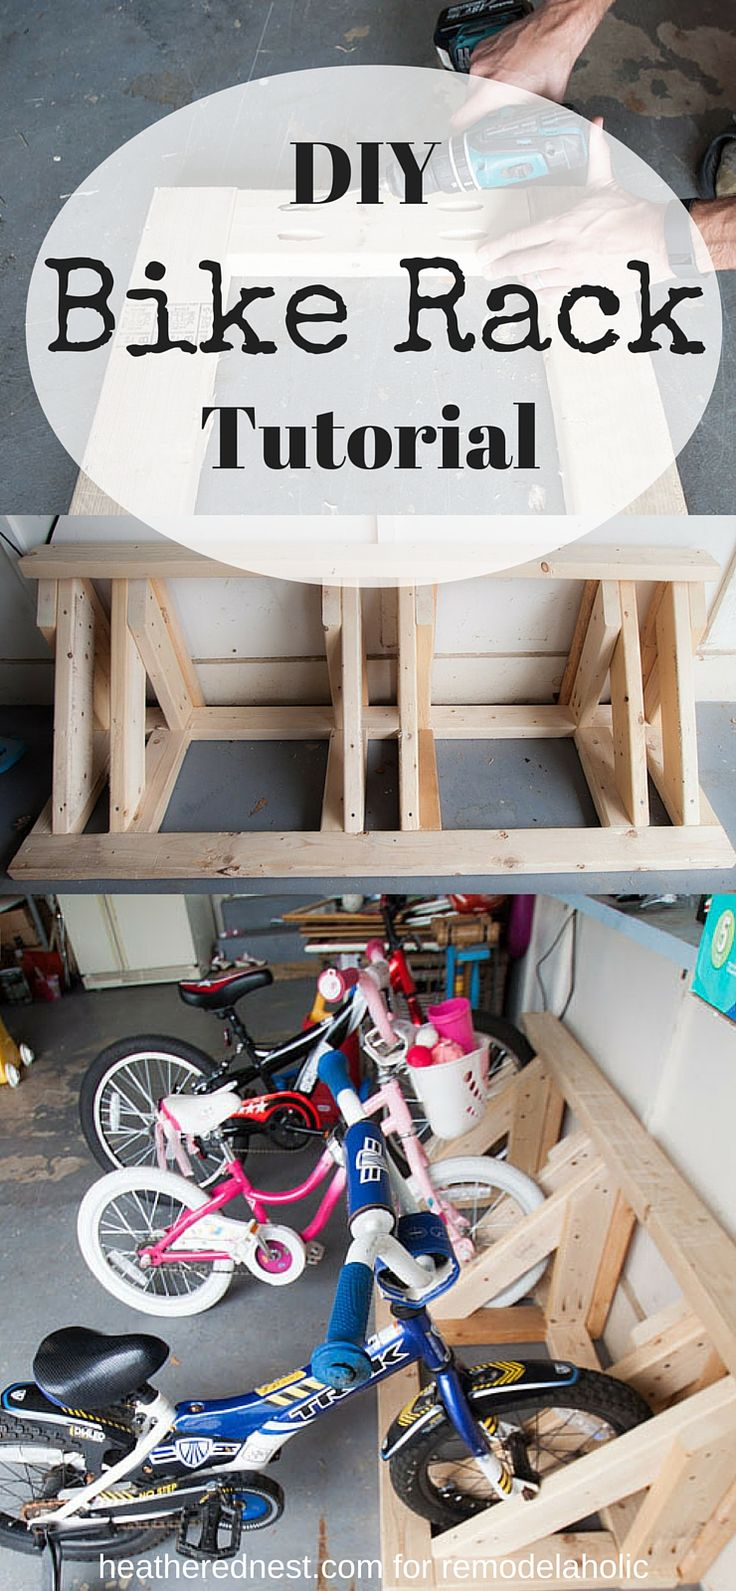 Look jeremy s bicycle rack apartment therapy - Build A Diy Bike Rack Tutorial